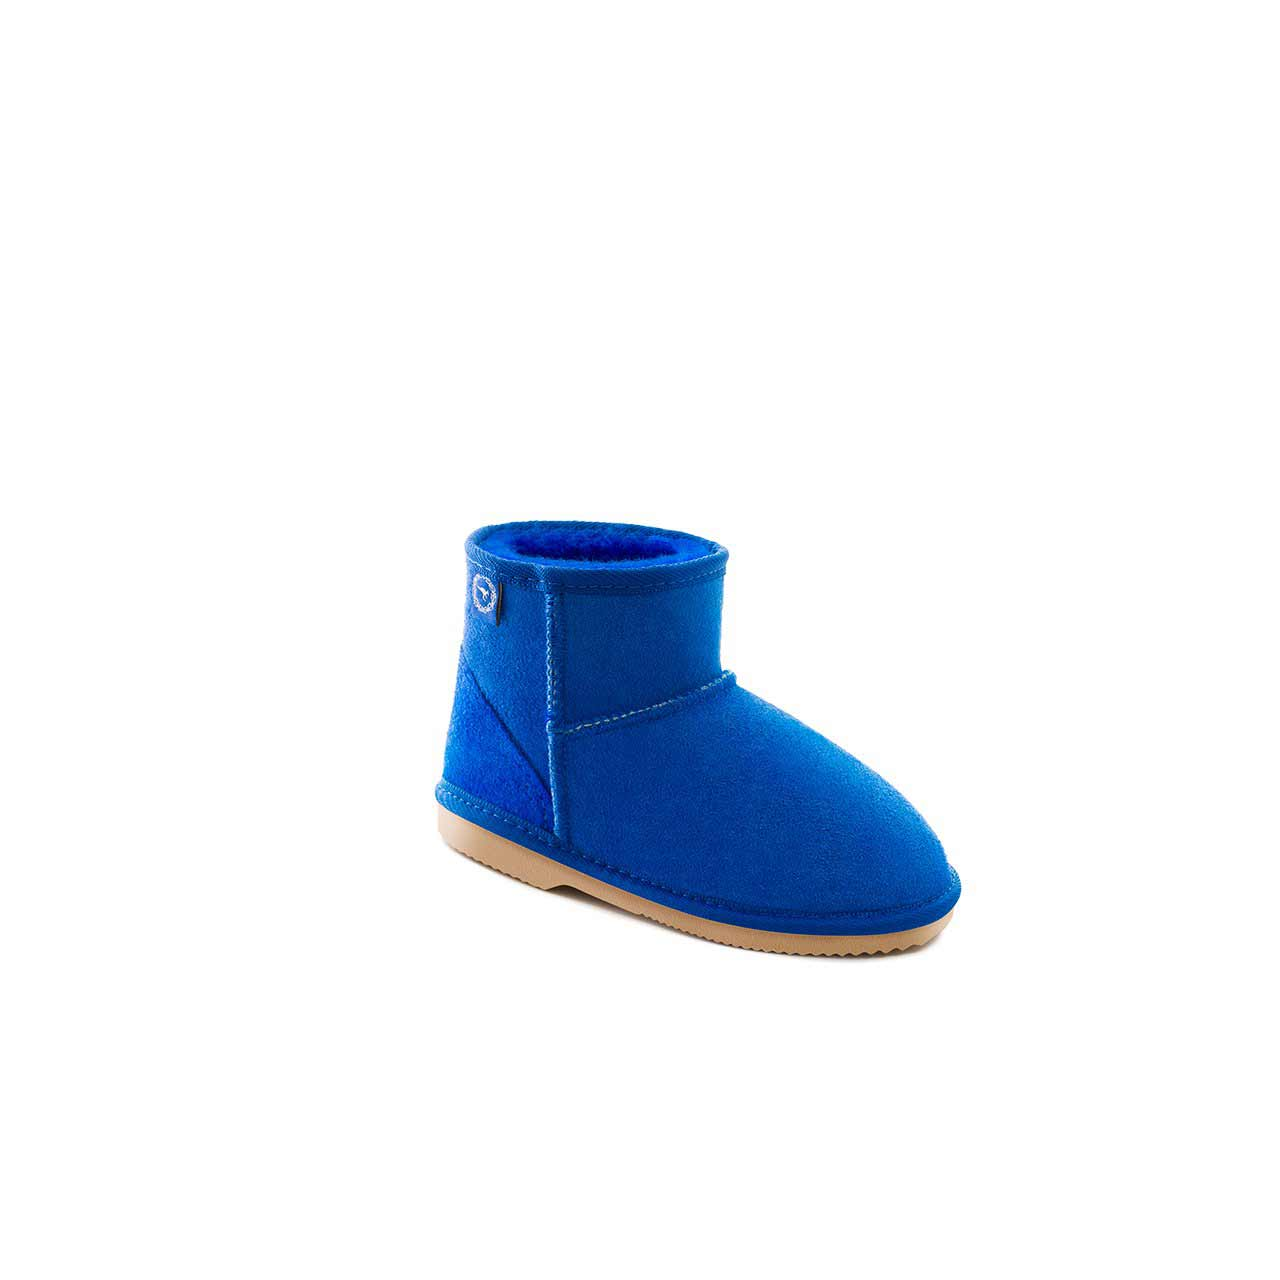 Children's Mini Boots - Cobalt